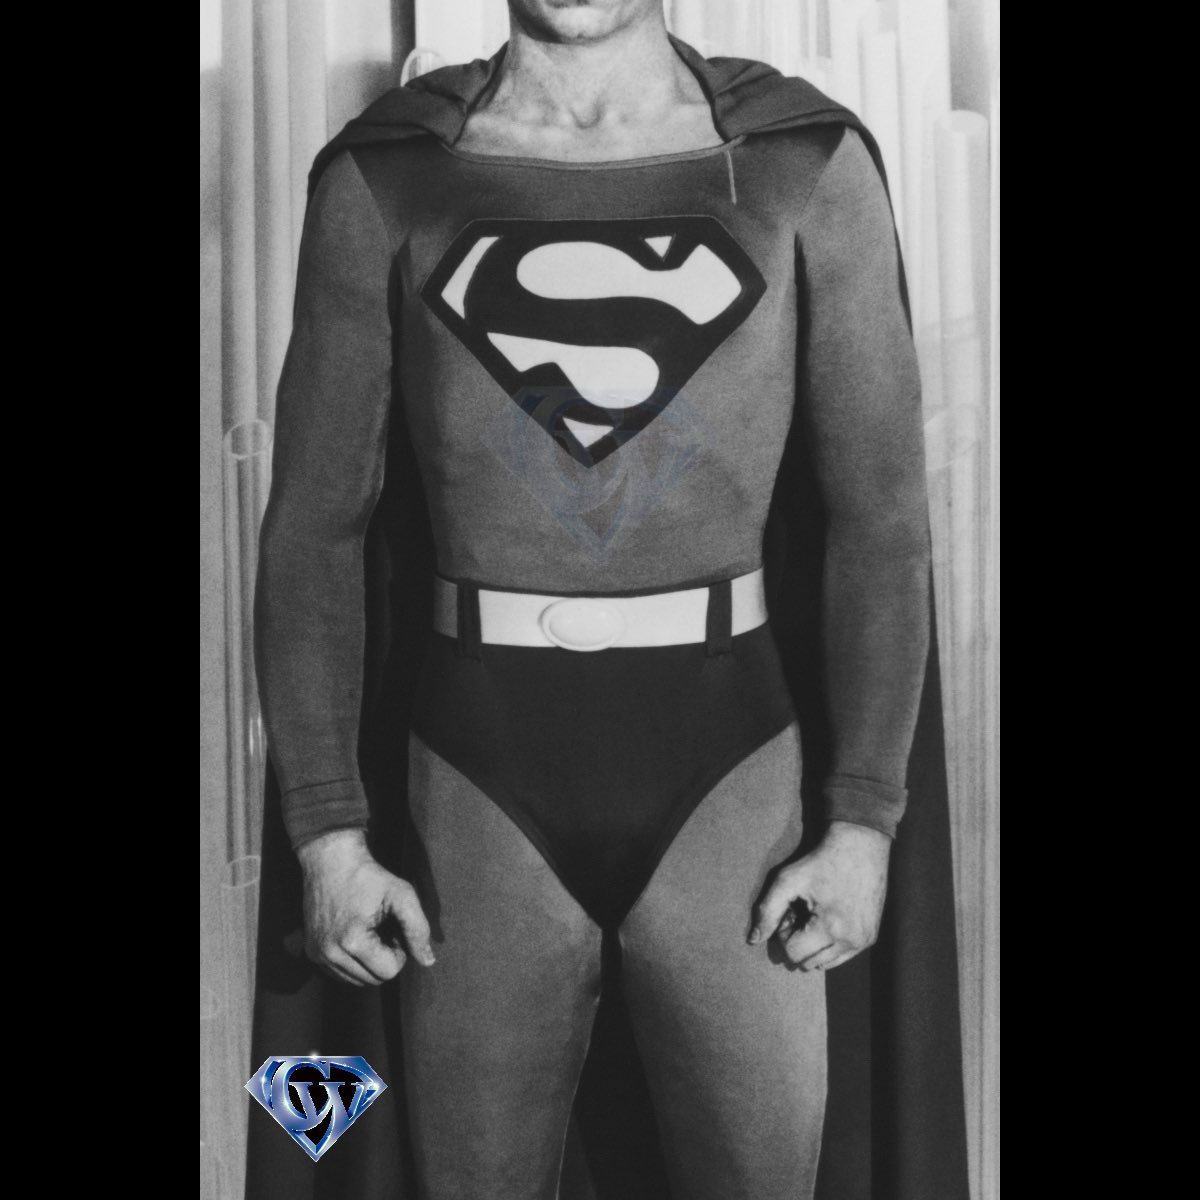 The Christopher Reeve mannequin at the Movieland Wax Museum in California, 1979. #movieland #superman #supermanthemovie #christopherreeve #mannequin #fortressofsolitudepic.twitter.com/Rq2iilO2q1